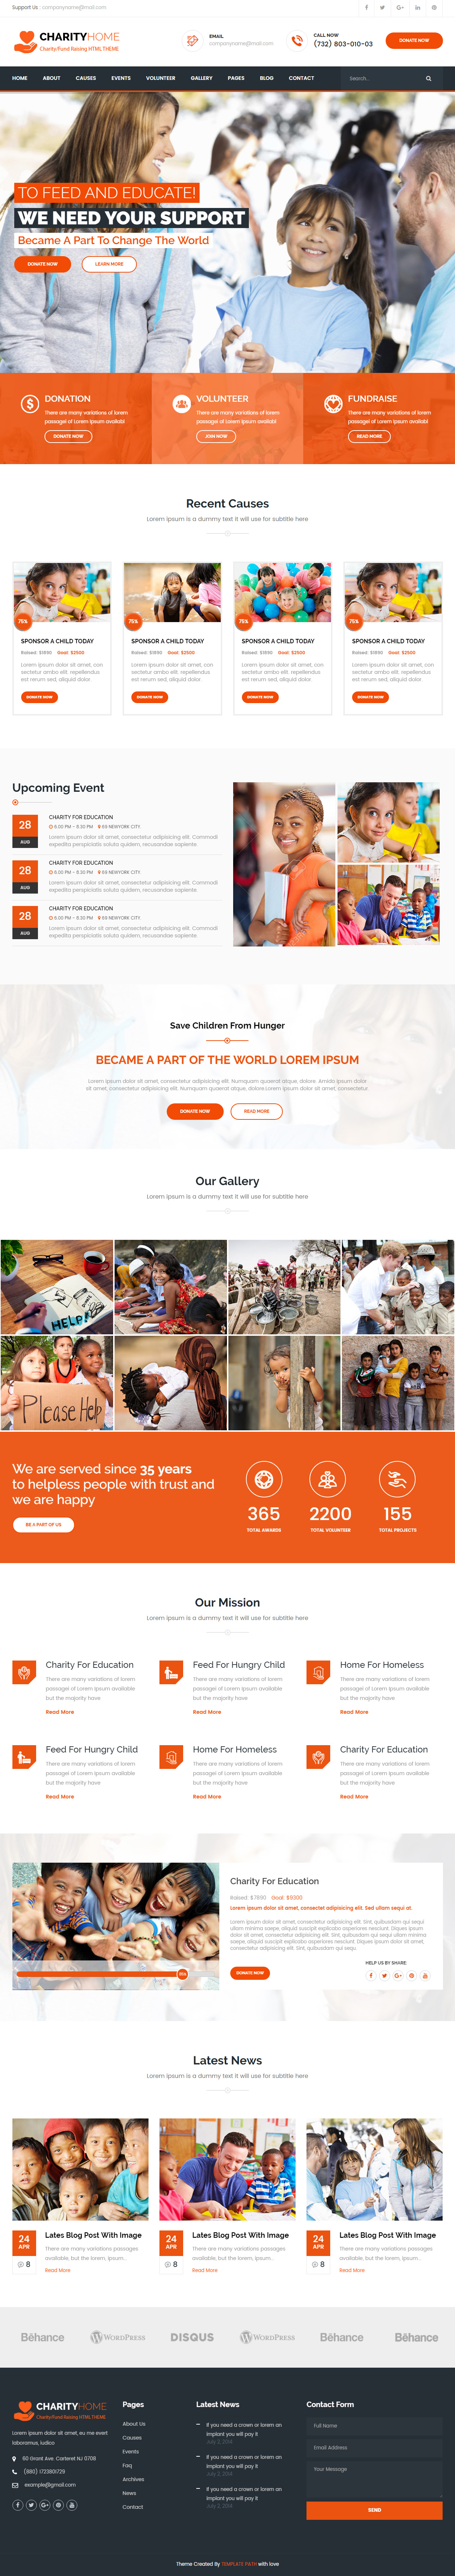 Charity Home is Premium full Responsive #Parallax #HTML5 Retina ...